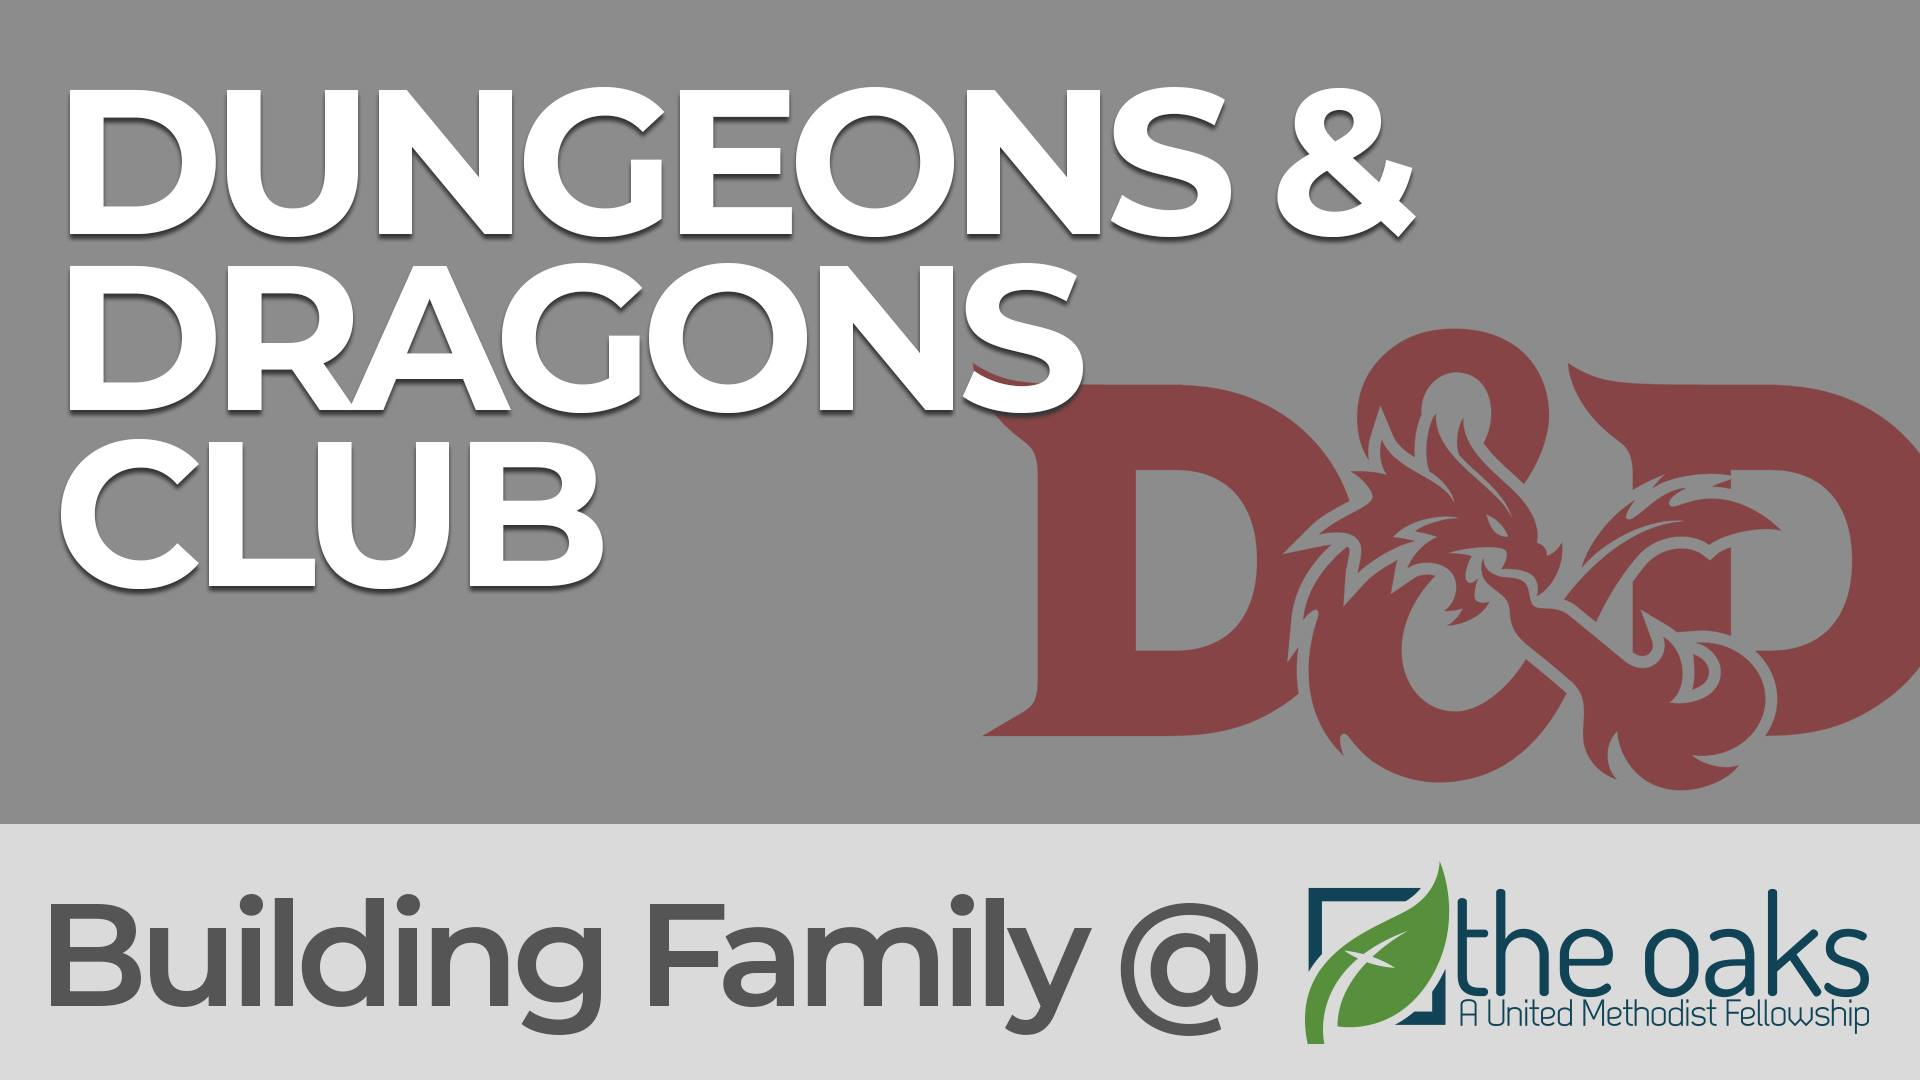 D&D Club - A group born from a love of video games and theater. It's a place where we all get to be different people for a few hours, become more powerful superheroes (or anti-heroes), and escape life for a bit with some great friends.